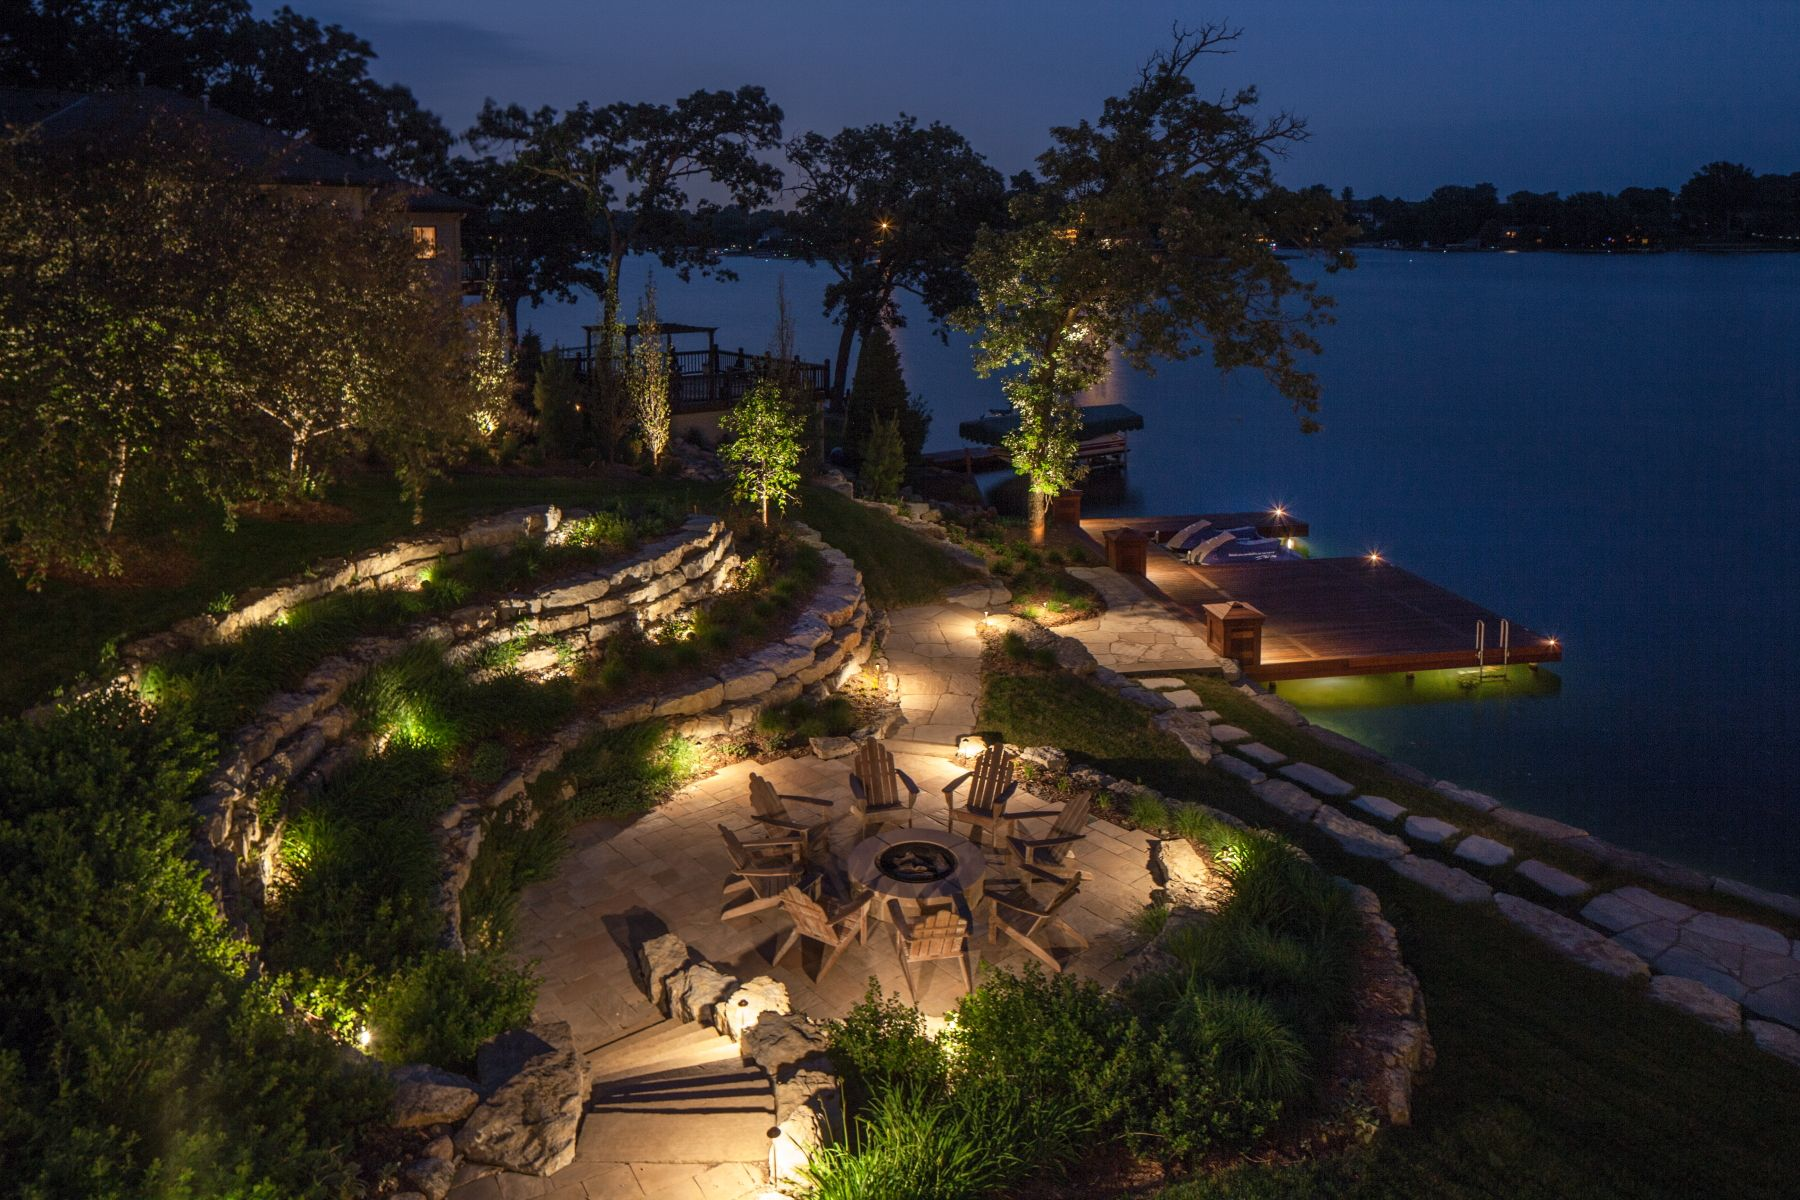 Fire Pit and Dock Lighting | Marina | Pinterest | Landscape lighting Fire Pit Outdoor Landscape Lighting Design Ideas on clubhouse landscape ideas, hot tub landscape ideas, patio landscape ideas, playground landscape ideas, fireplace landscape ideas, pool landscape ideas, putting green landscape ideas, picnic table landscape ideas, garage landscape ideas, jacuzzi landscape ideas, charcoal grill landscape ideas, pet friendly landscape ideas, tv landscape ideas, hammock landscape ideas,